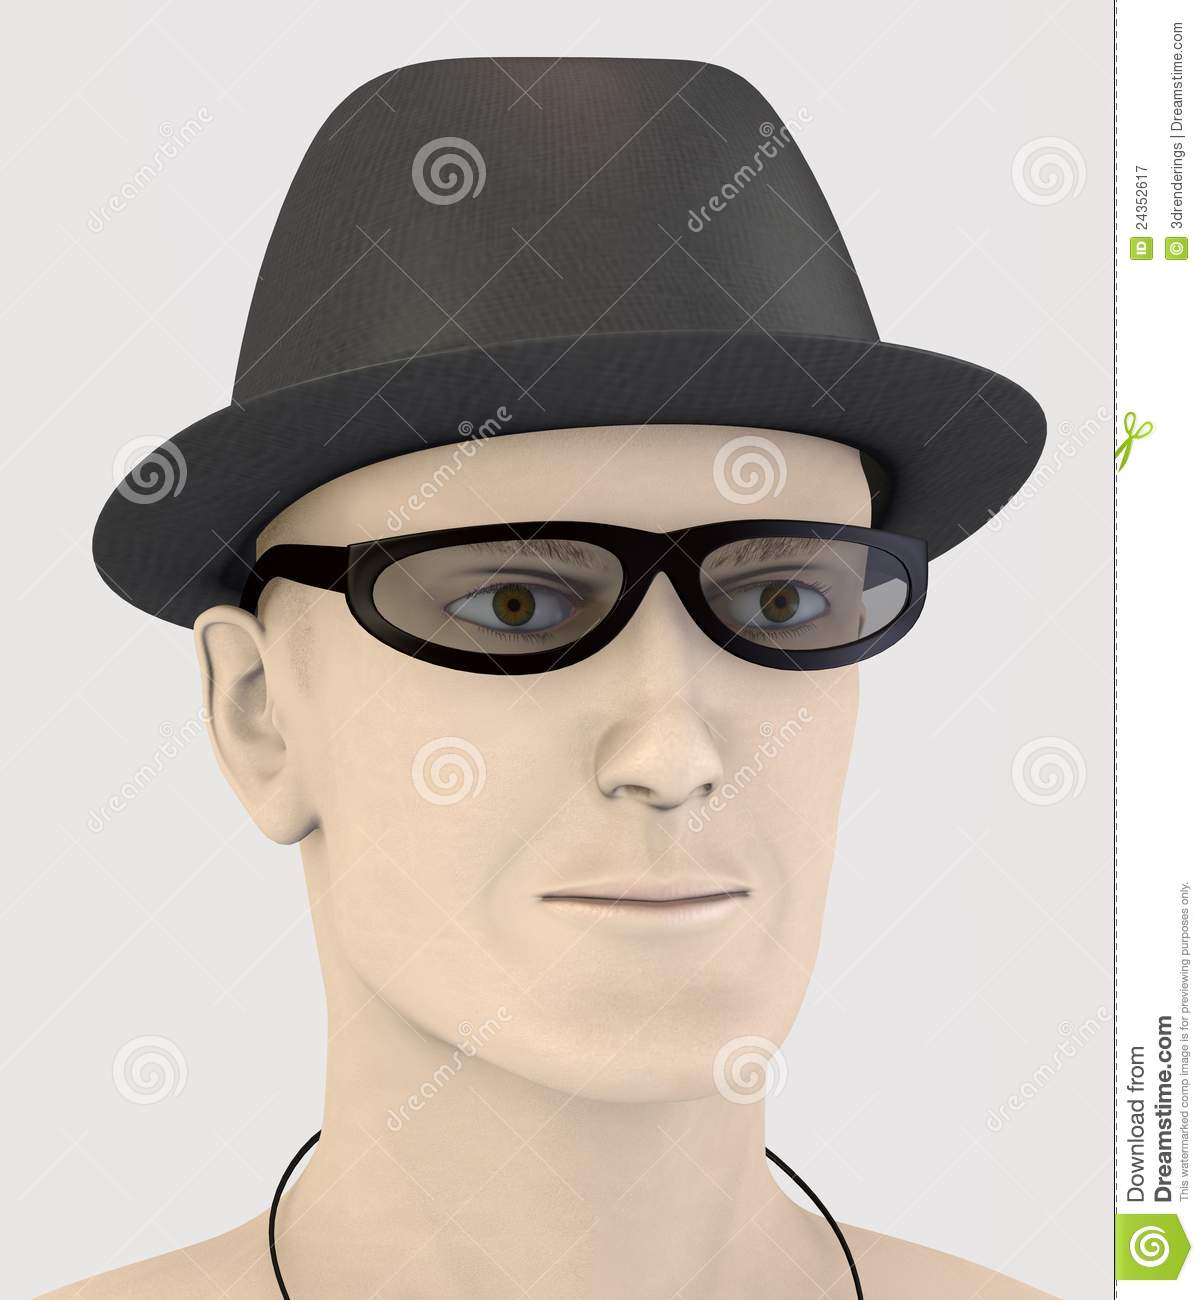 Artificial rendered 3d character - hat and glasses